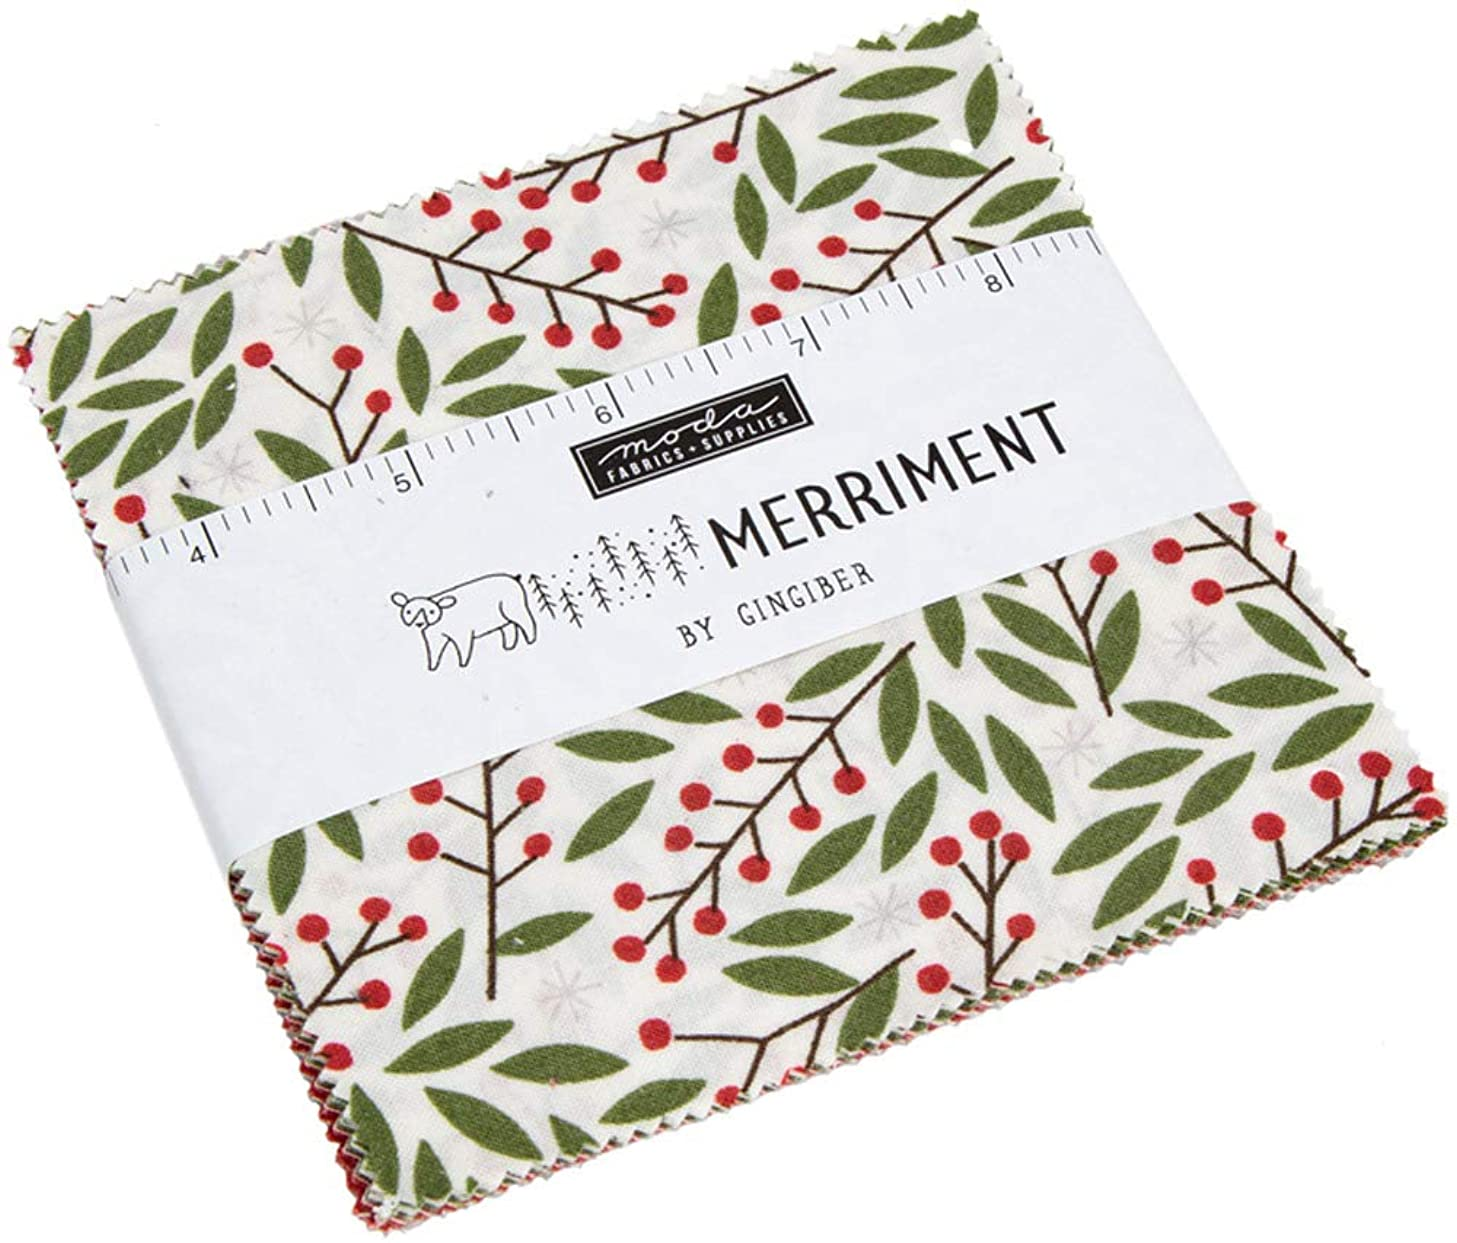 Merriment Charm Pack by Gingiber; 42-5 Inch Precut Fabric Quilt Squares